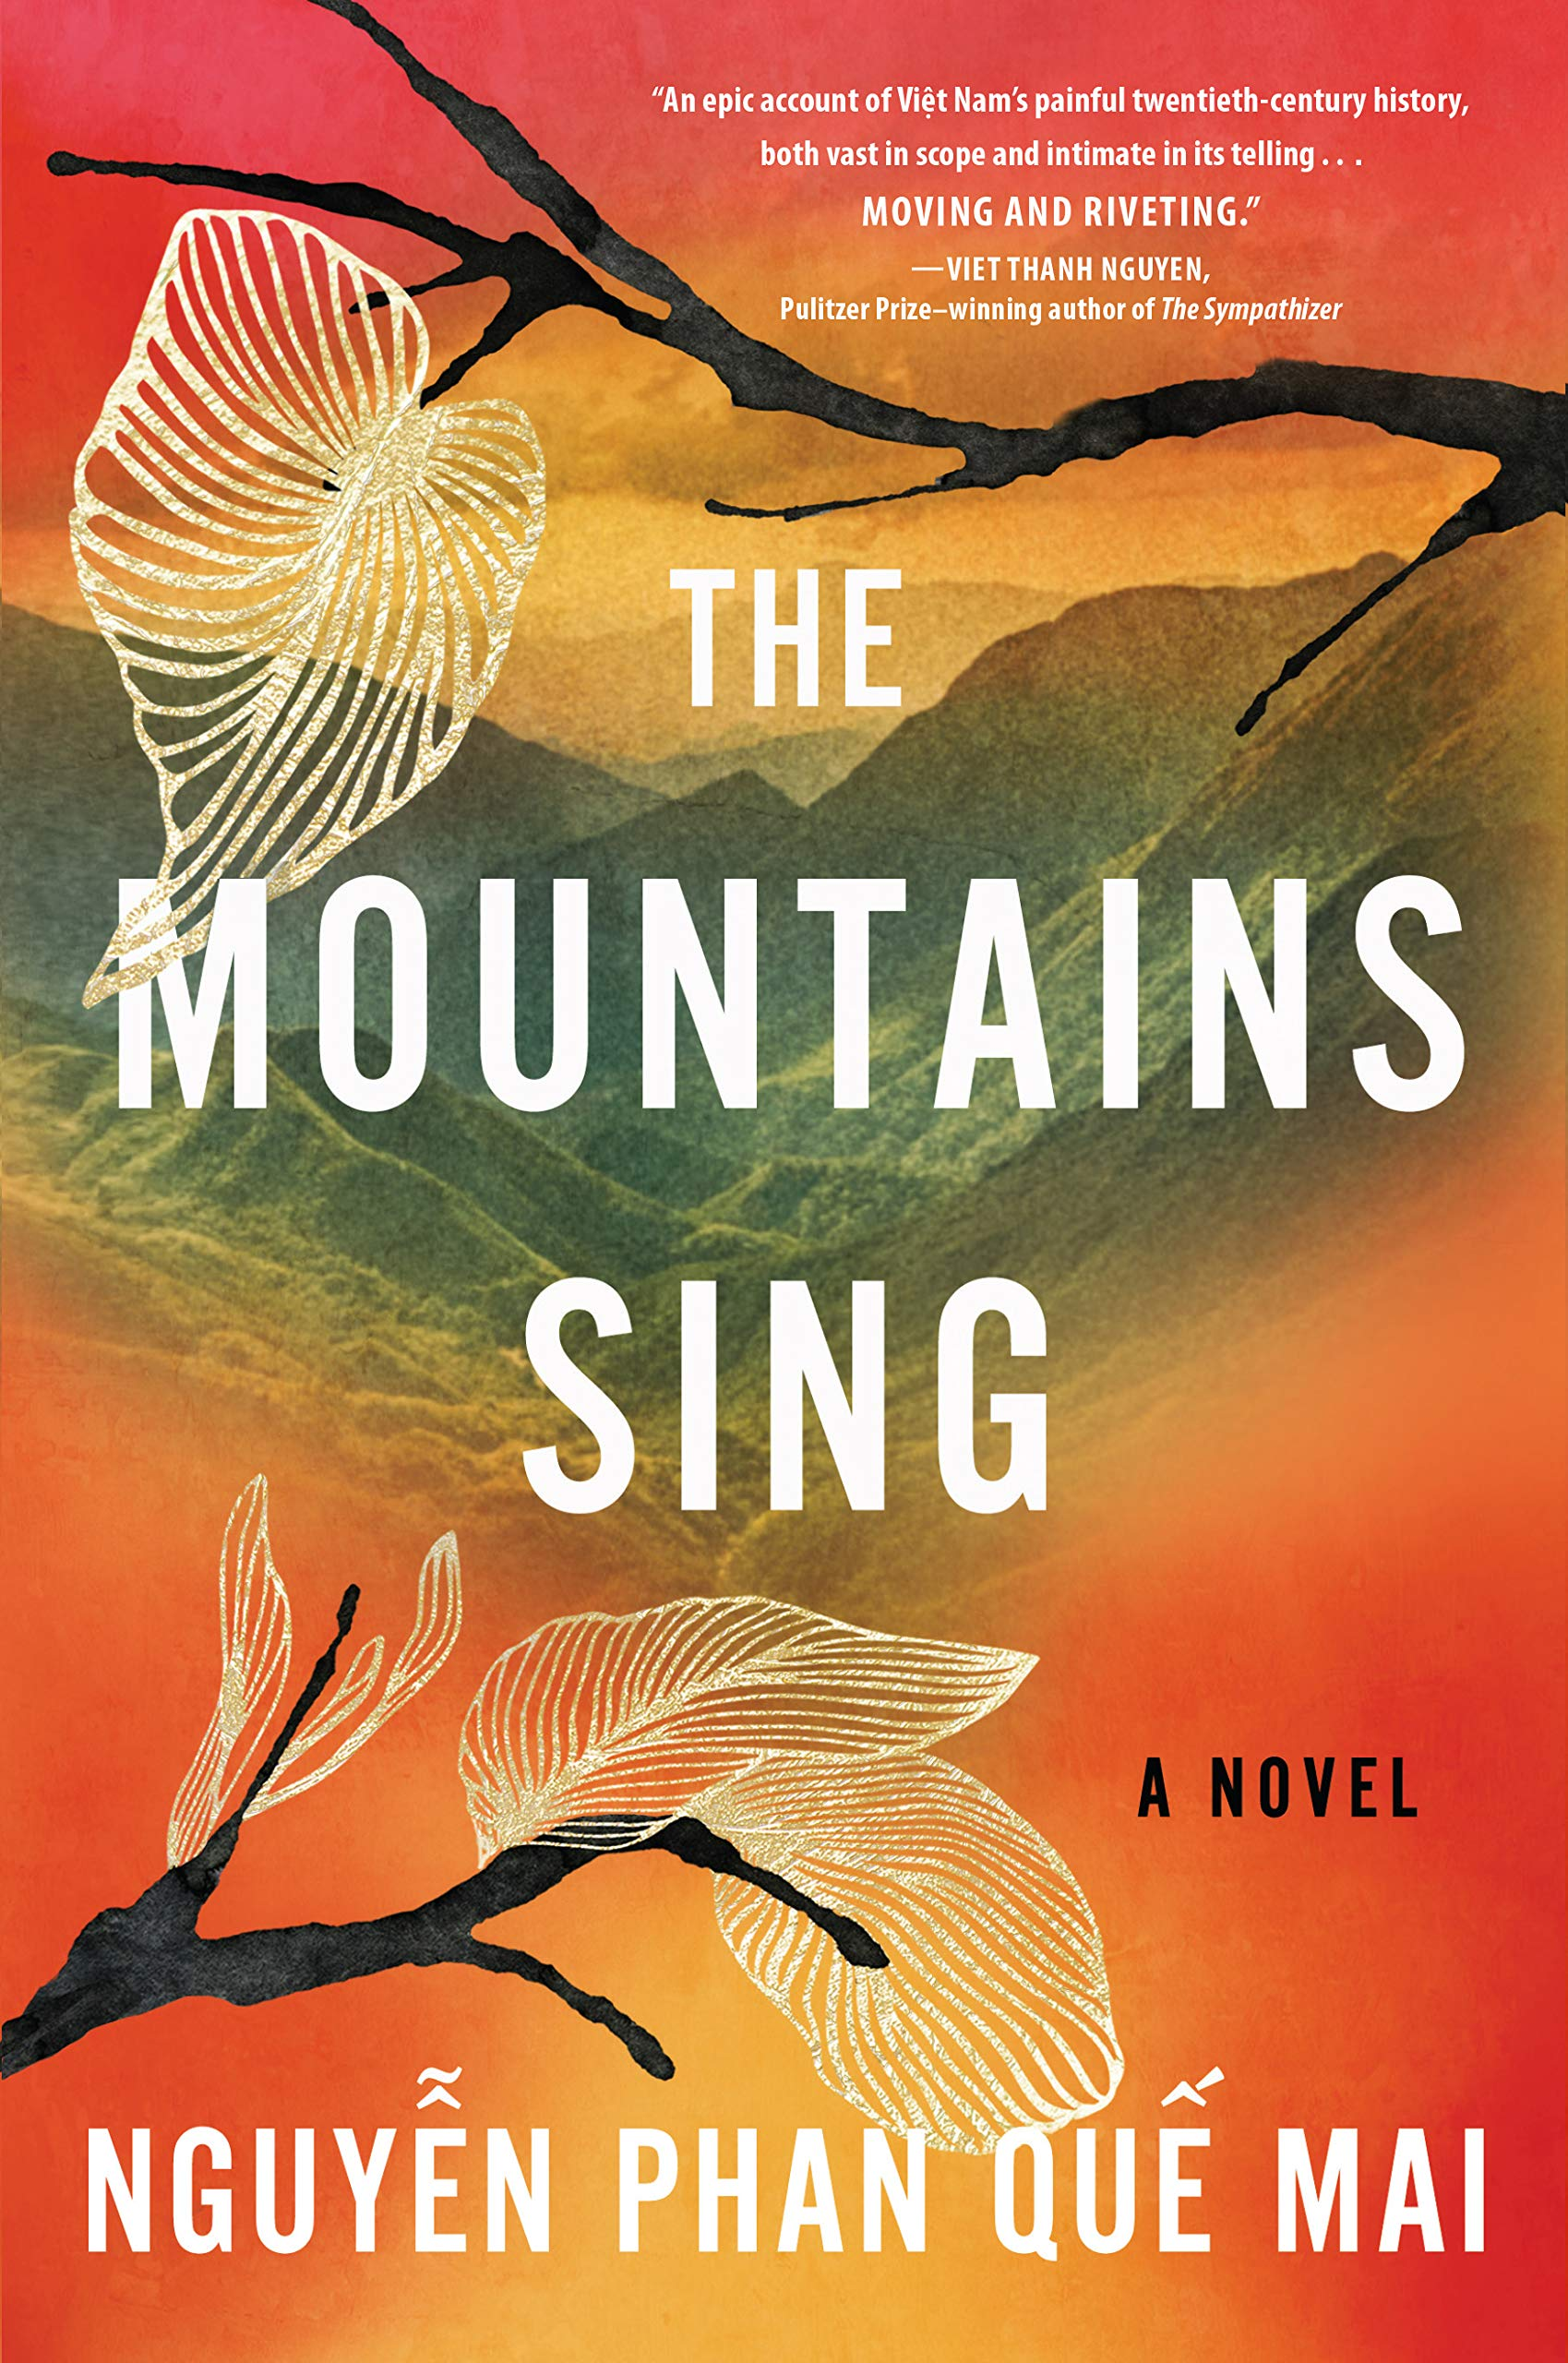 Amazon.com: The Mountains Sing (9781616208189): Nguyễn Phan Quế ...